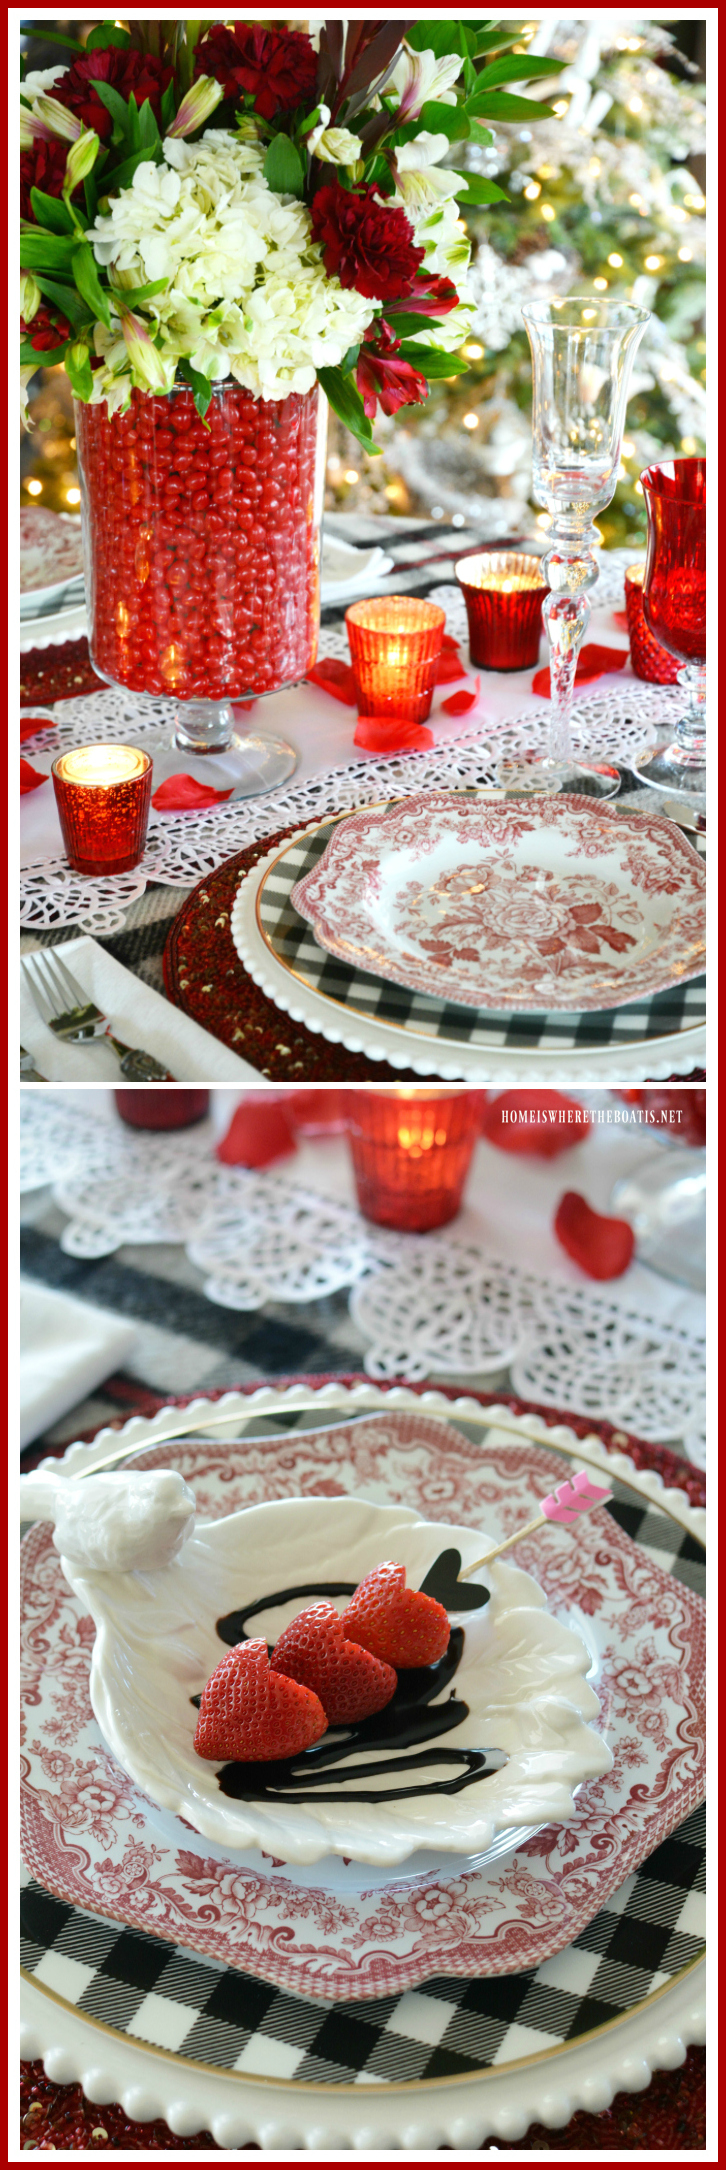 Floral candy vase centerpiece for Valentine's Day table and strawberry hearts with chocolate | homeiswheretheboatis.net #ValentinesDay #tablescape #floral